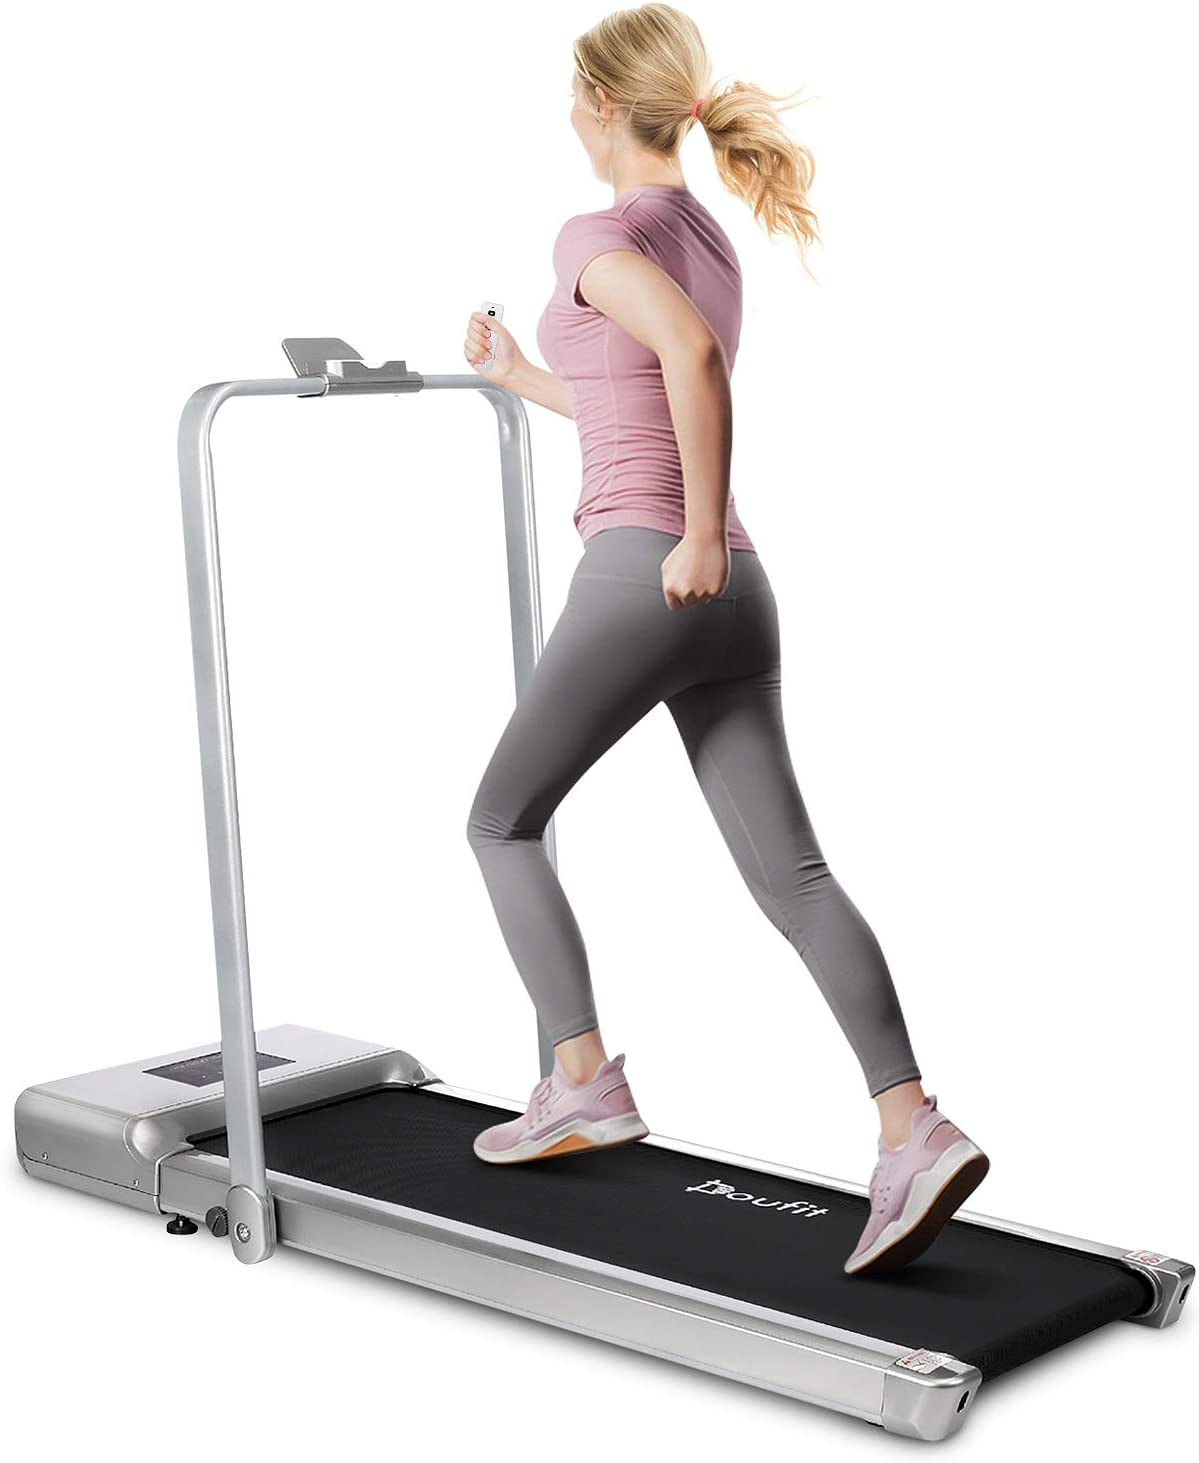 Folding Treadmill for Home Use, Doufit TD-01 Under Desk Electric Walking Jogging Exercise Machine for Small Space, Portable Compact Workout Treadmill with Remote Control & Tablet Holder (1 to 6KM/H)